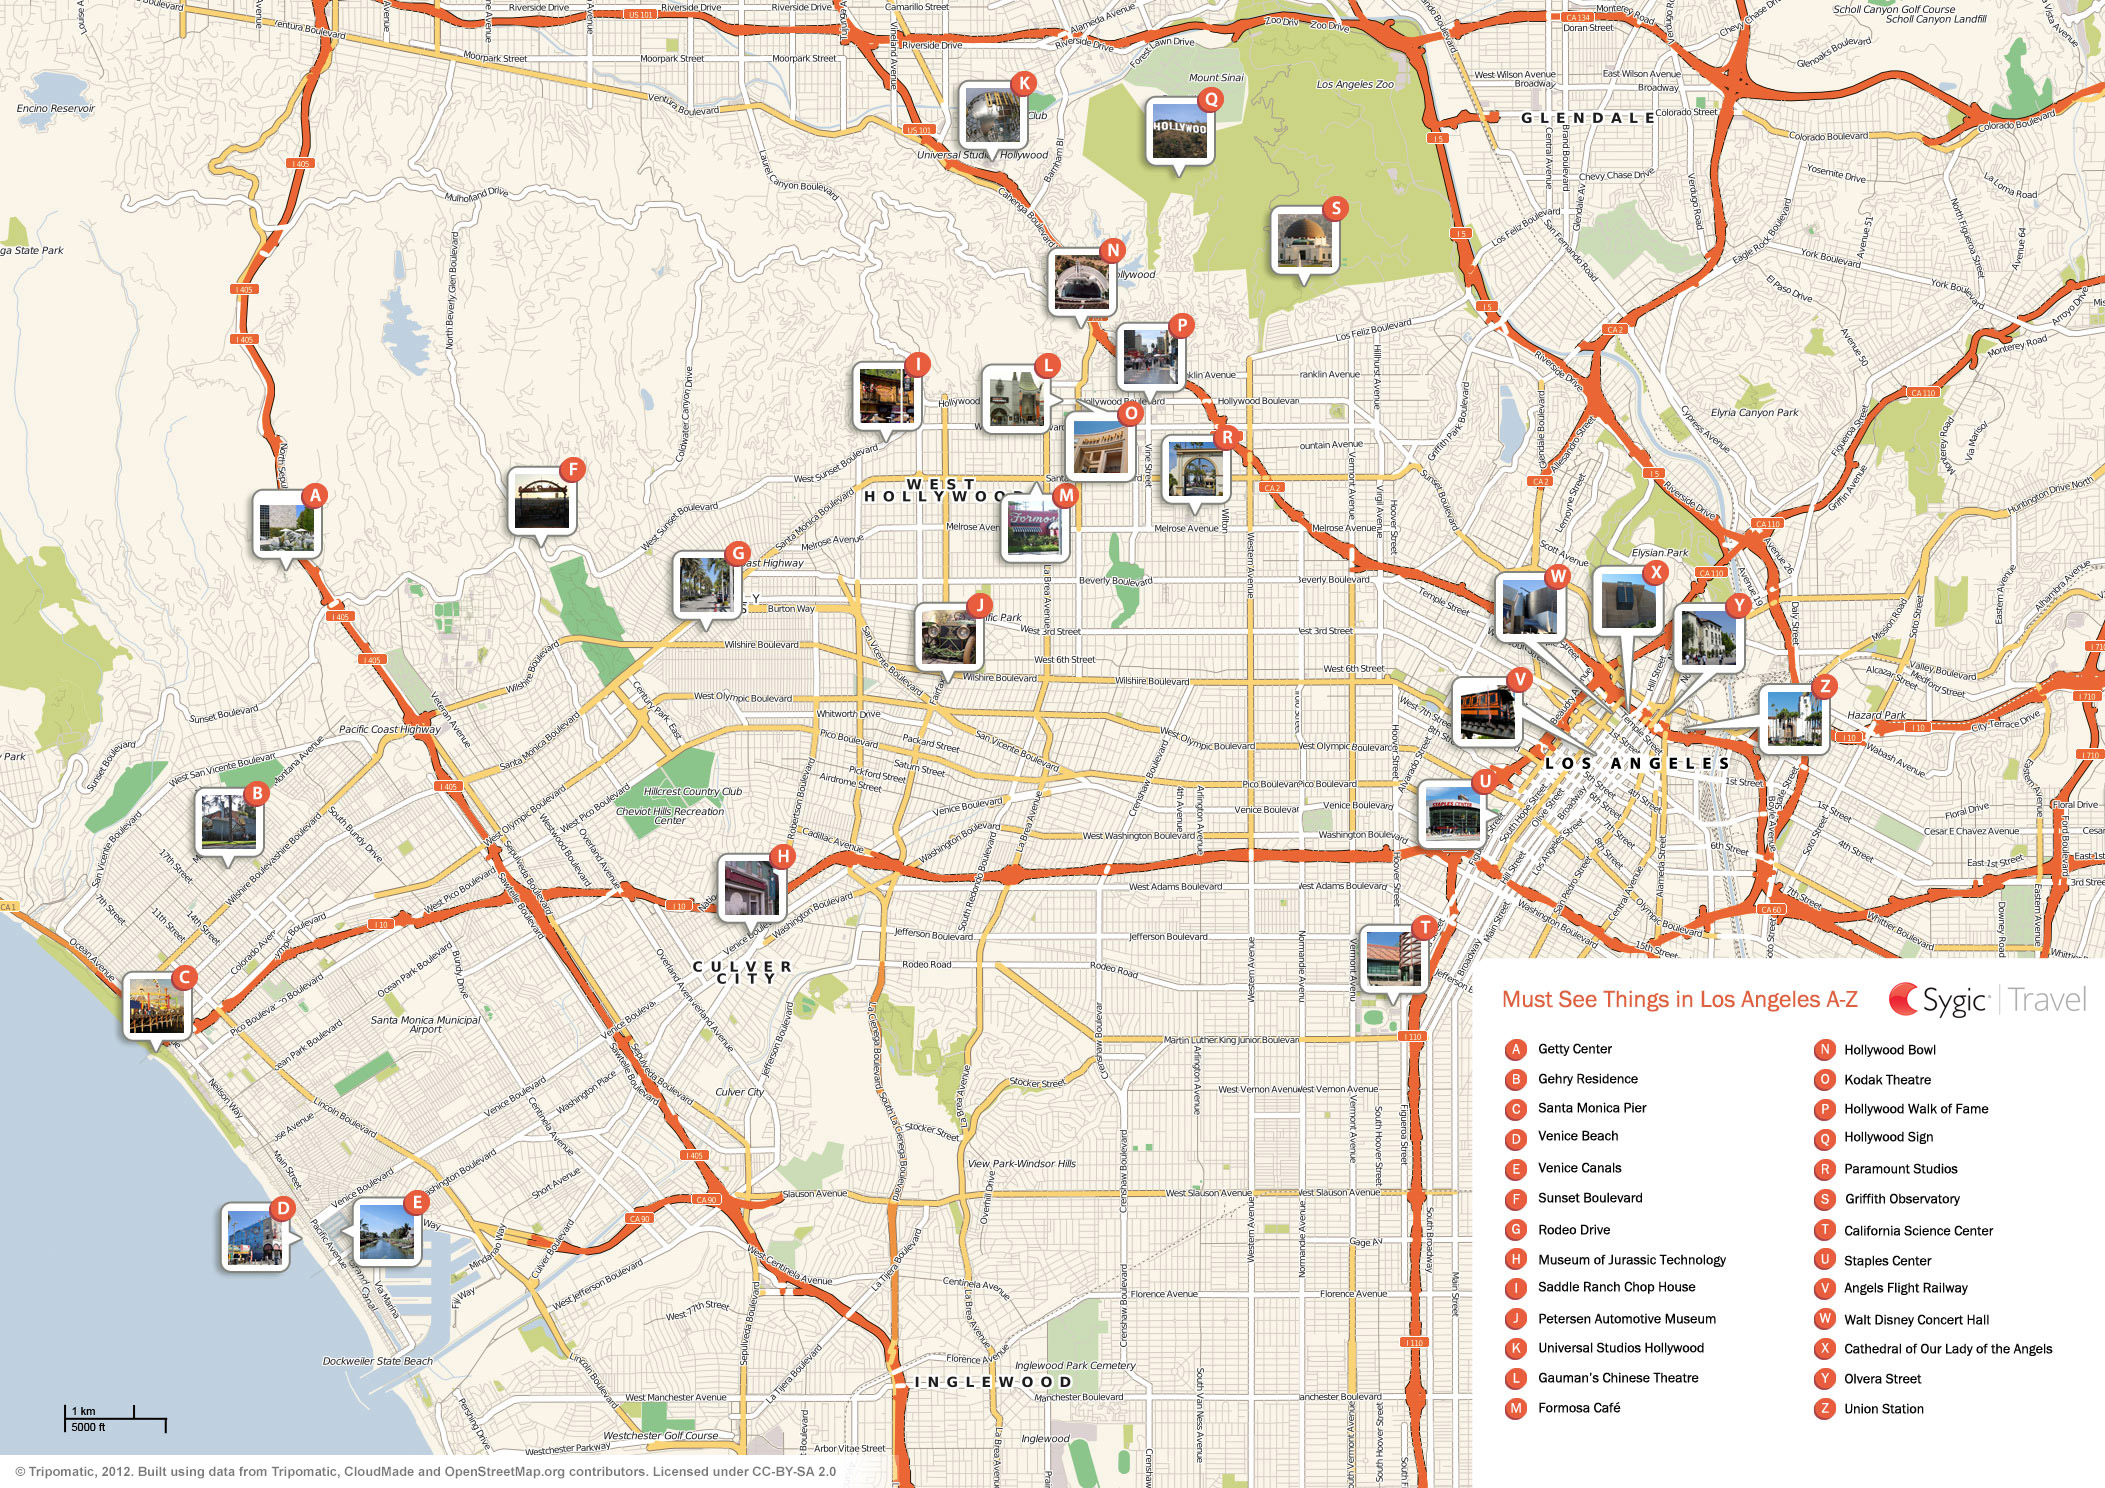 Los Angeles Printable Tourist Map – Tourist Map Of Hollywood